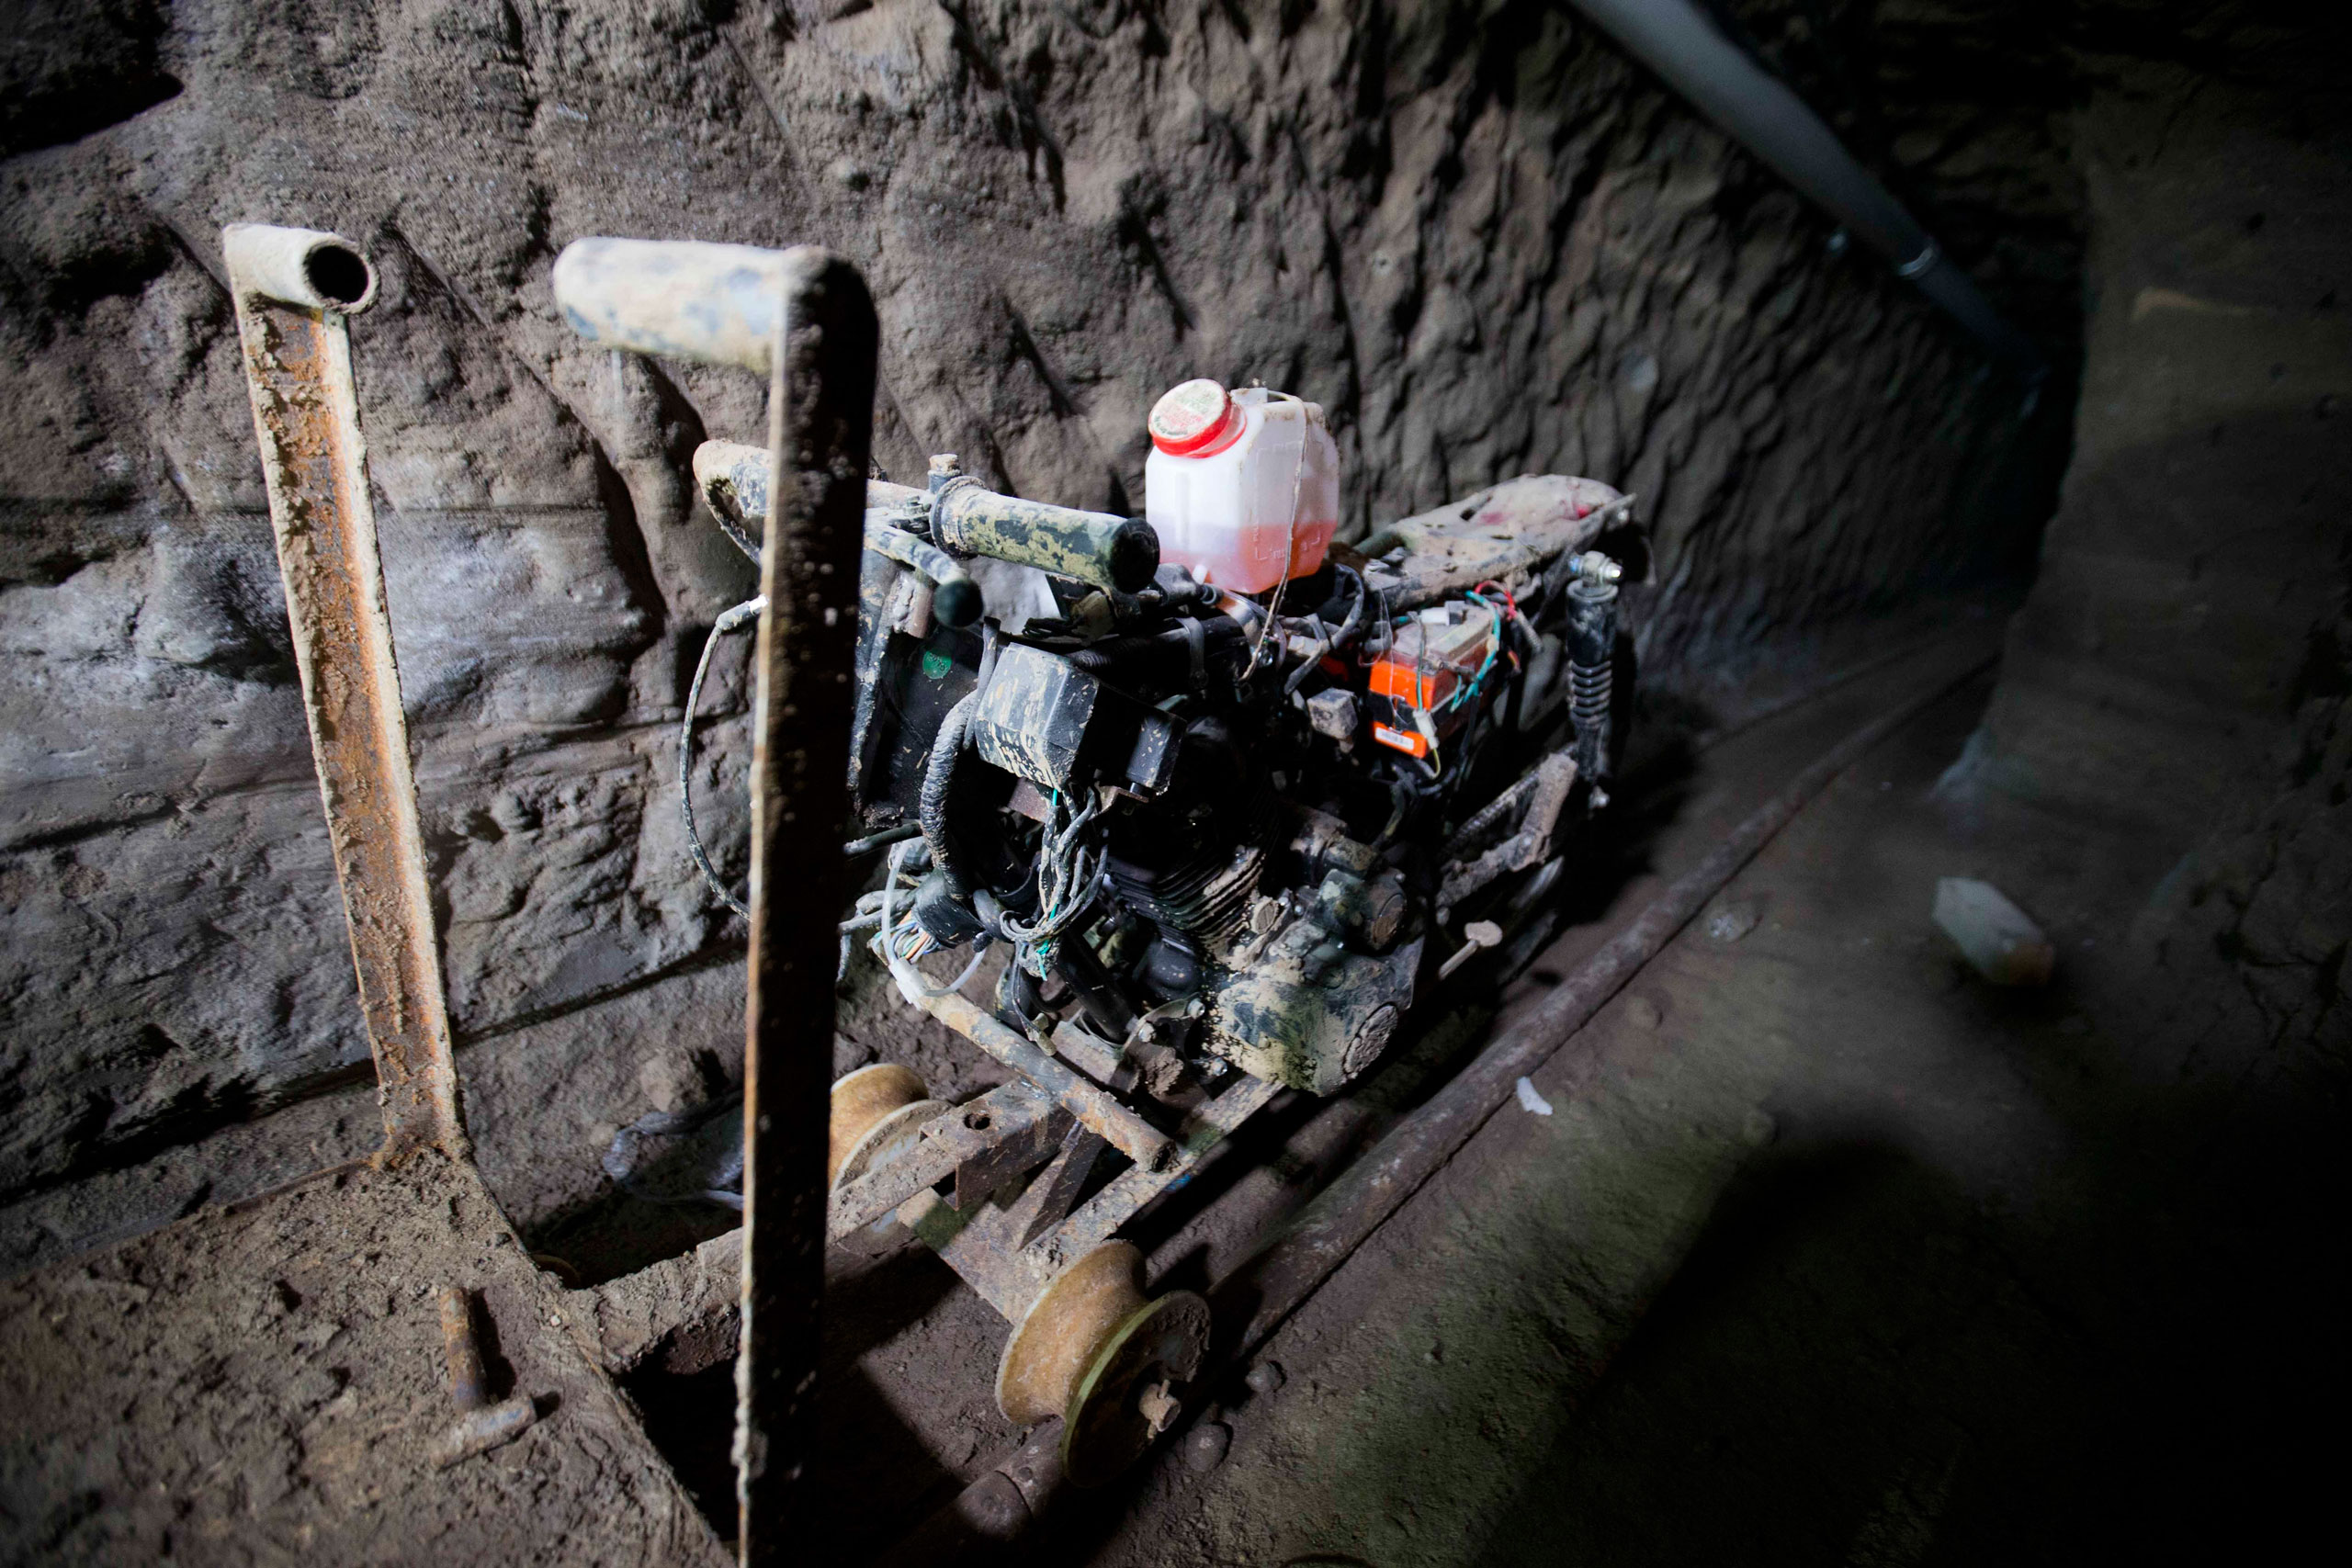 A motorcycle adapted to a rail is seen under the half-built house where drug lord Joaquin  El Chapo  Guzman made his escape through a tunnel in Almoloya, Mexico, on July 14, 2015.